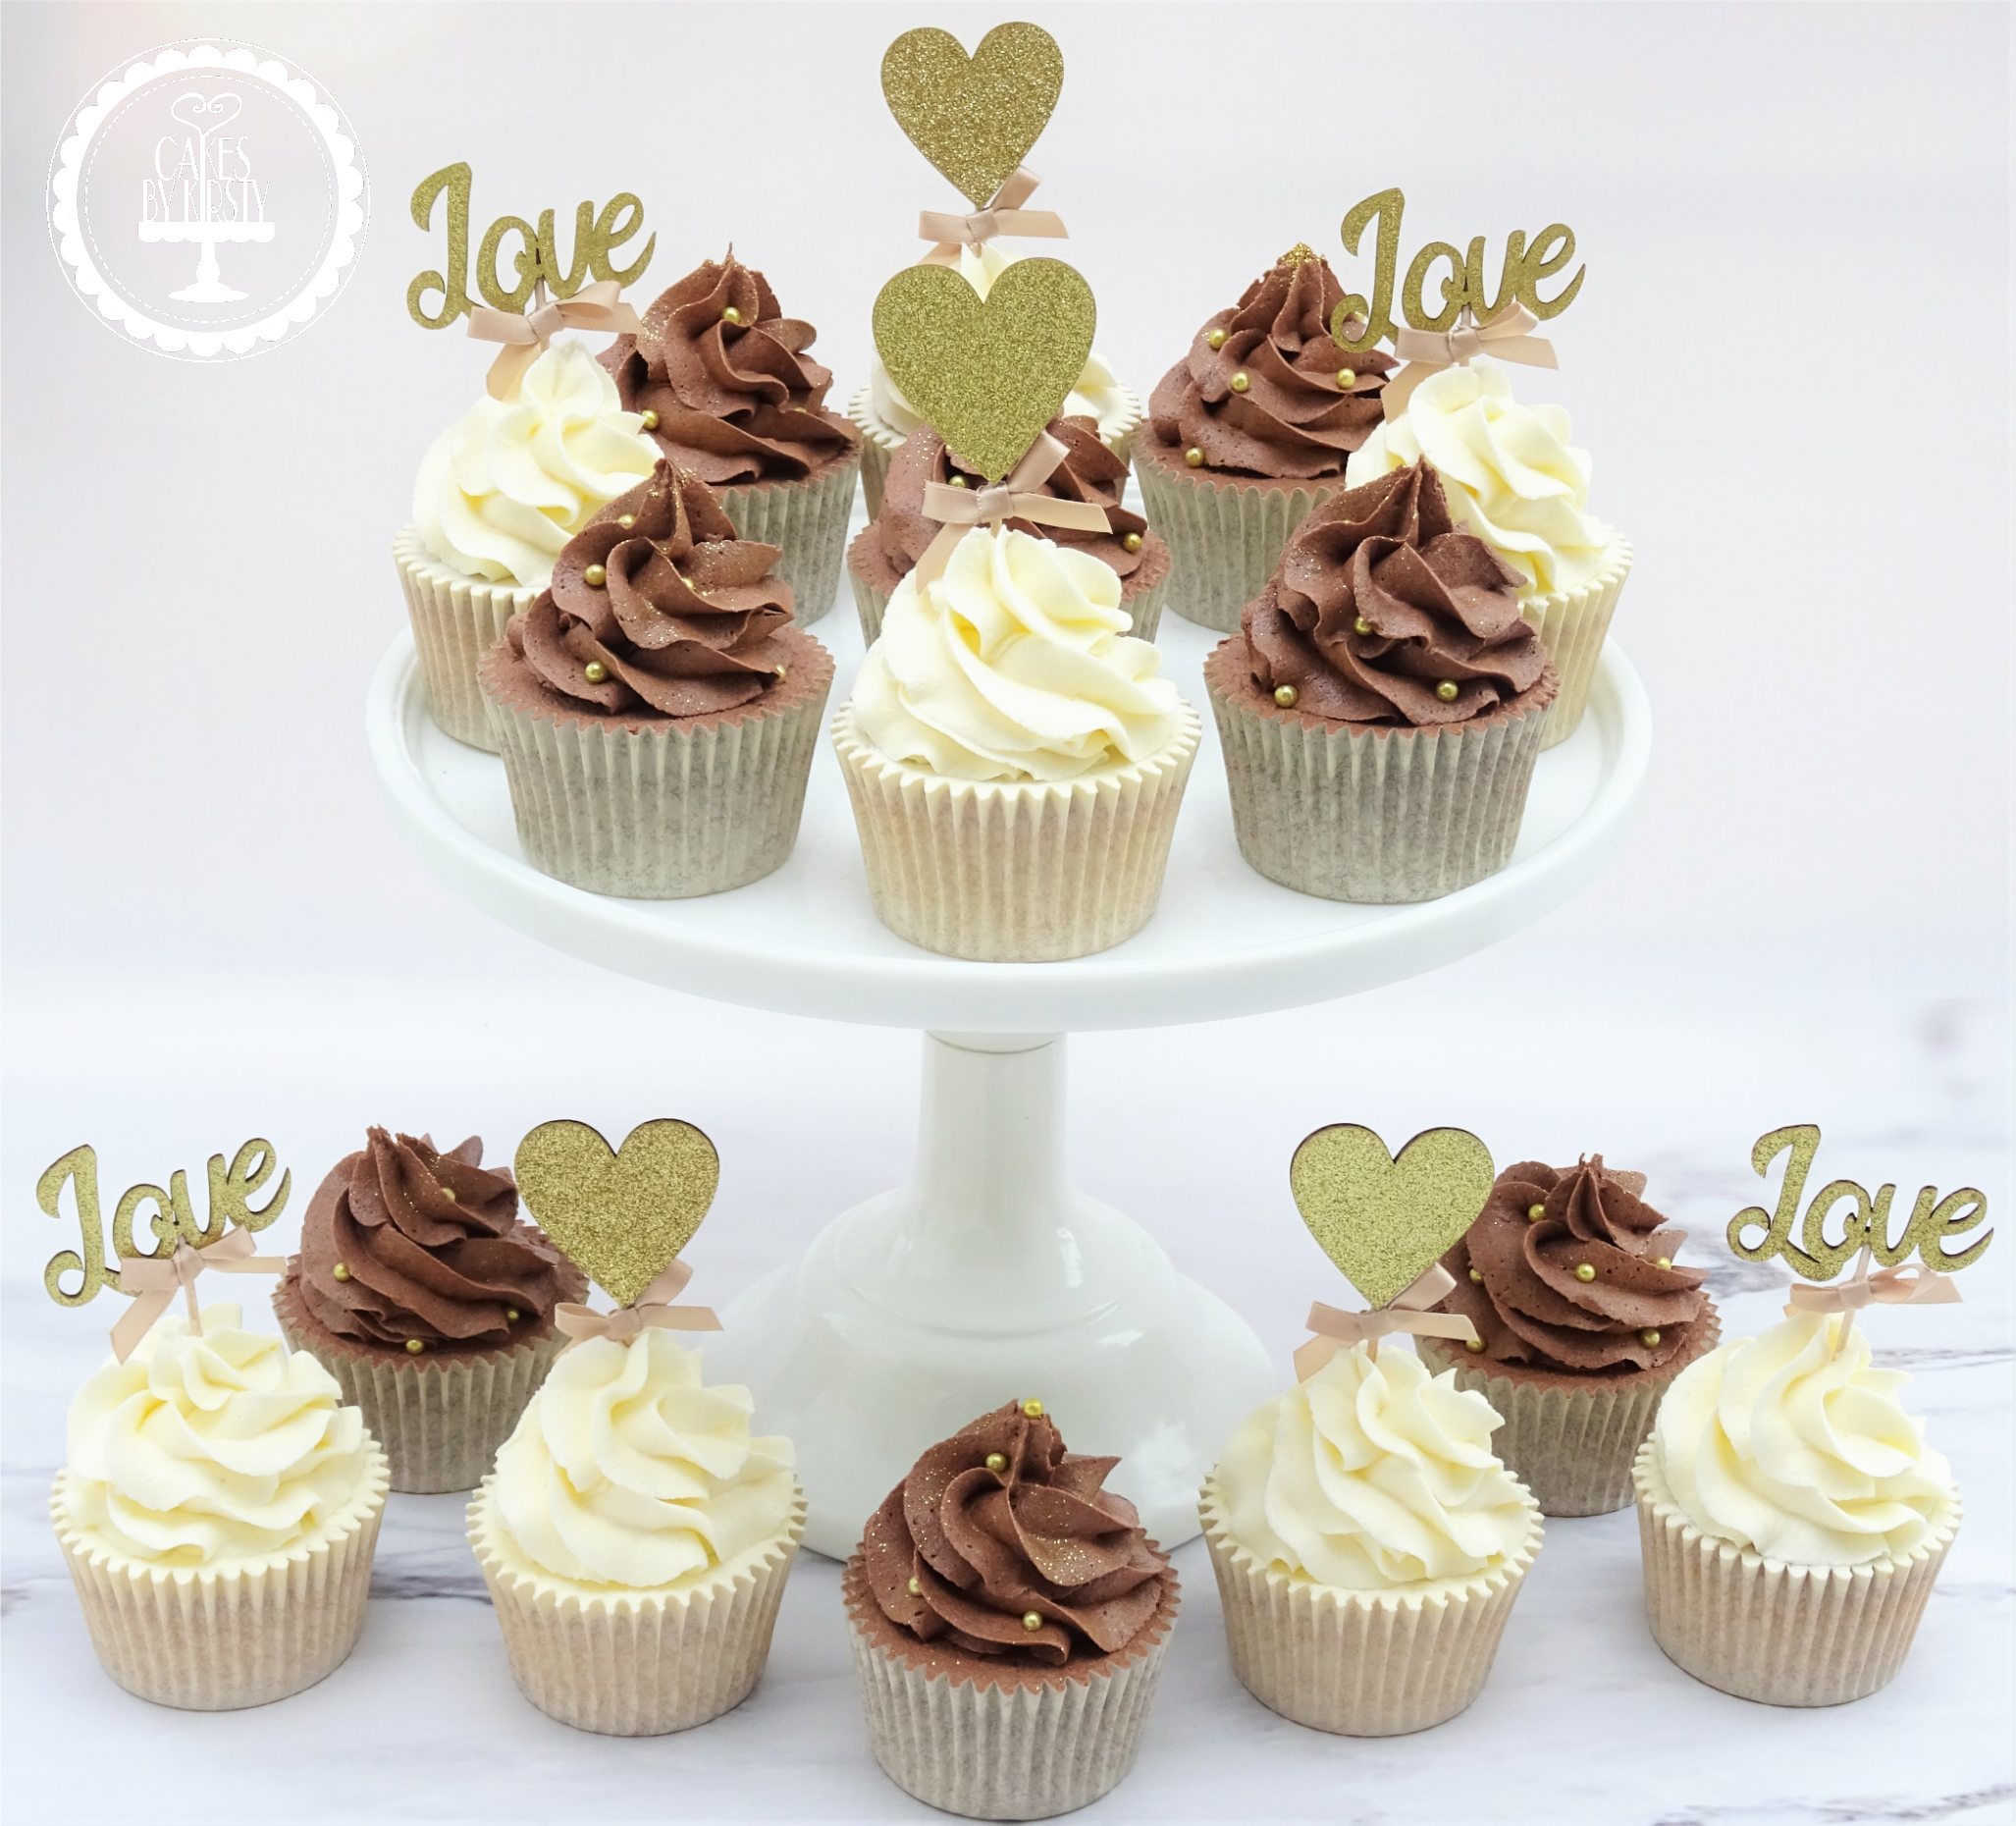 Love & Heart Wedding Cupcakes